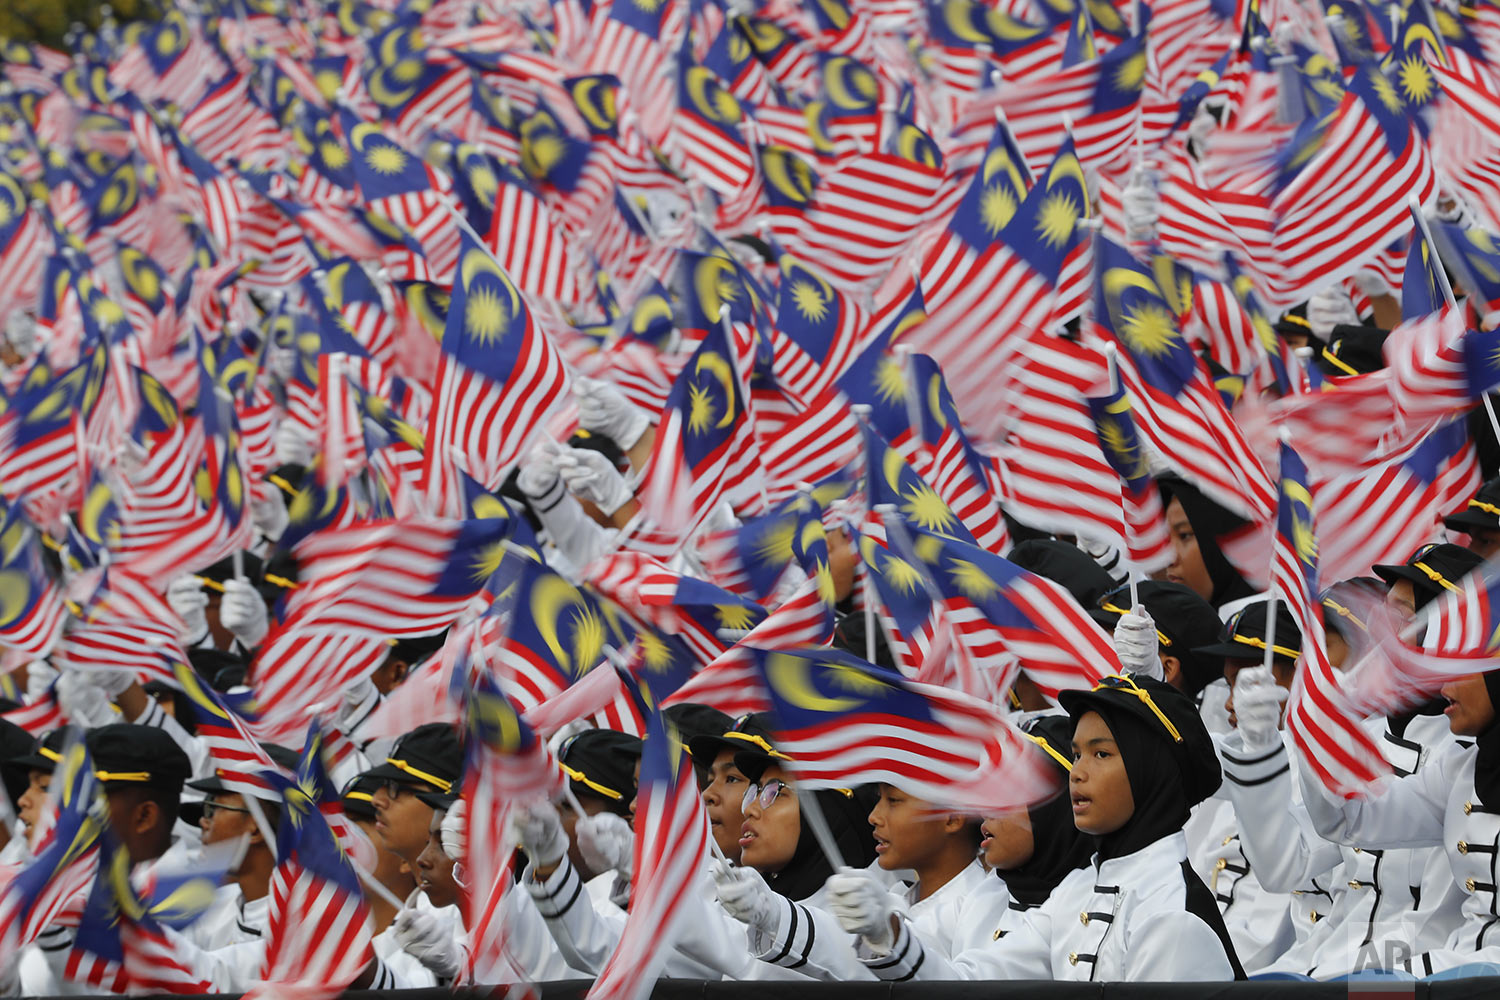 Students wave national flags during 62nd Independence Day celebrations in Putrajaya, Malaysia, Saturday, Aug. 31, 2019. (AP Photo/Vincent Thian)